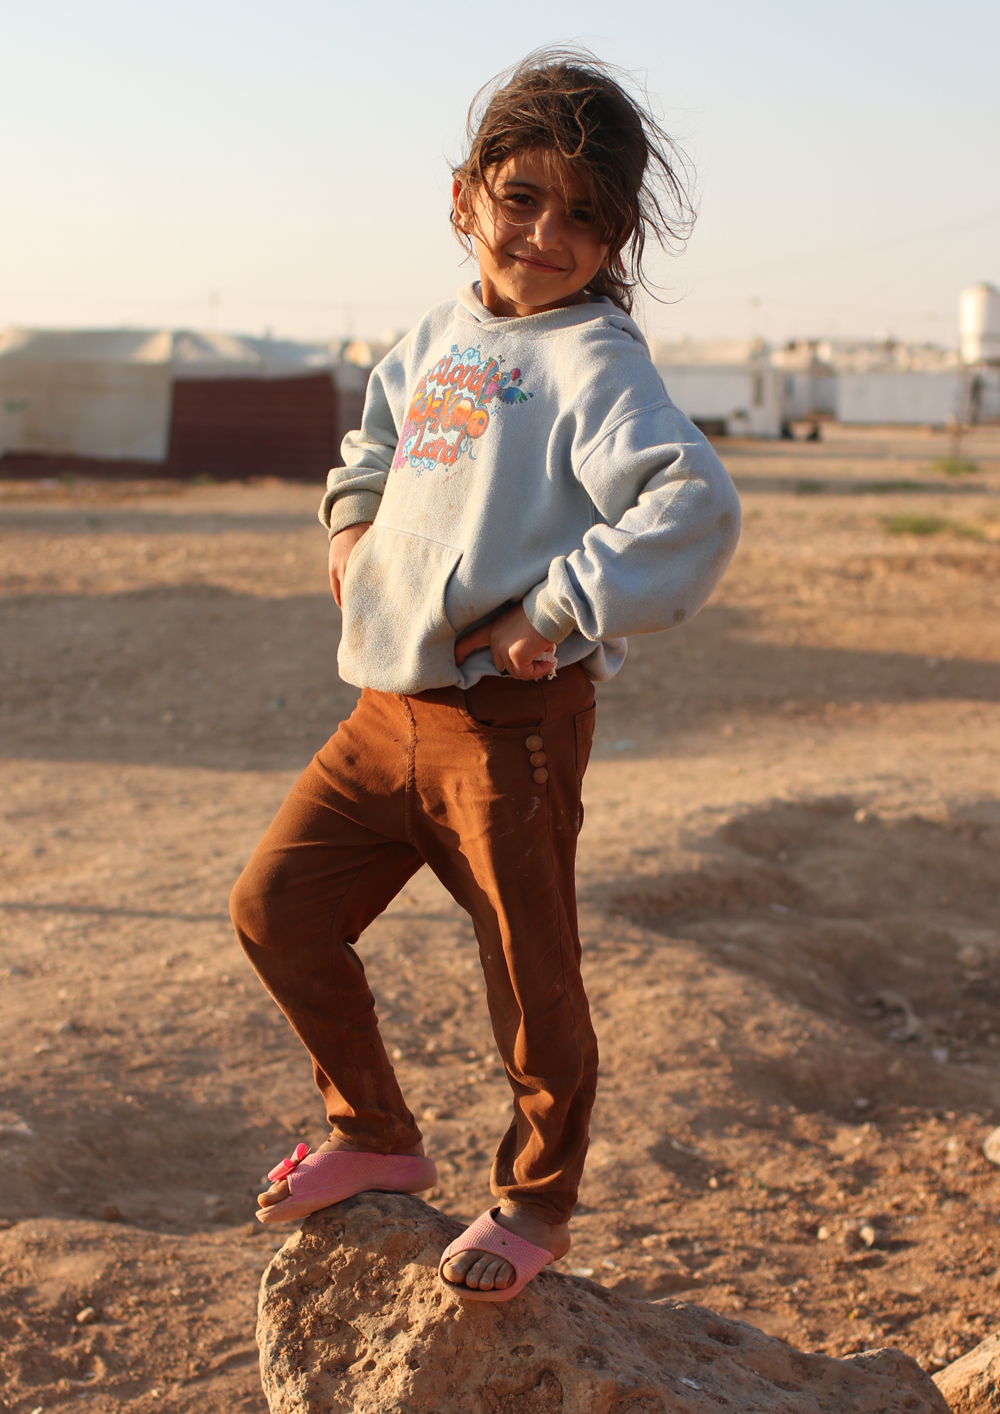 Syrian refugee girl on rock